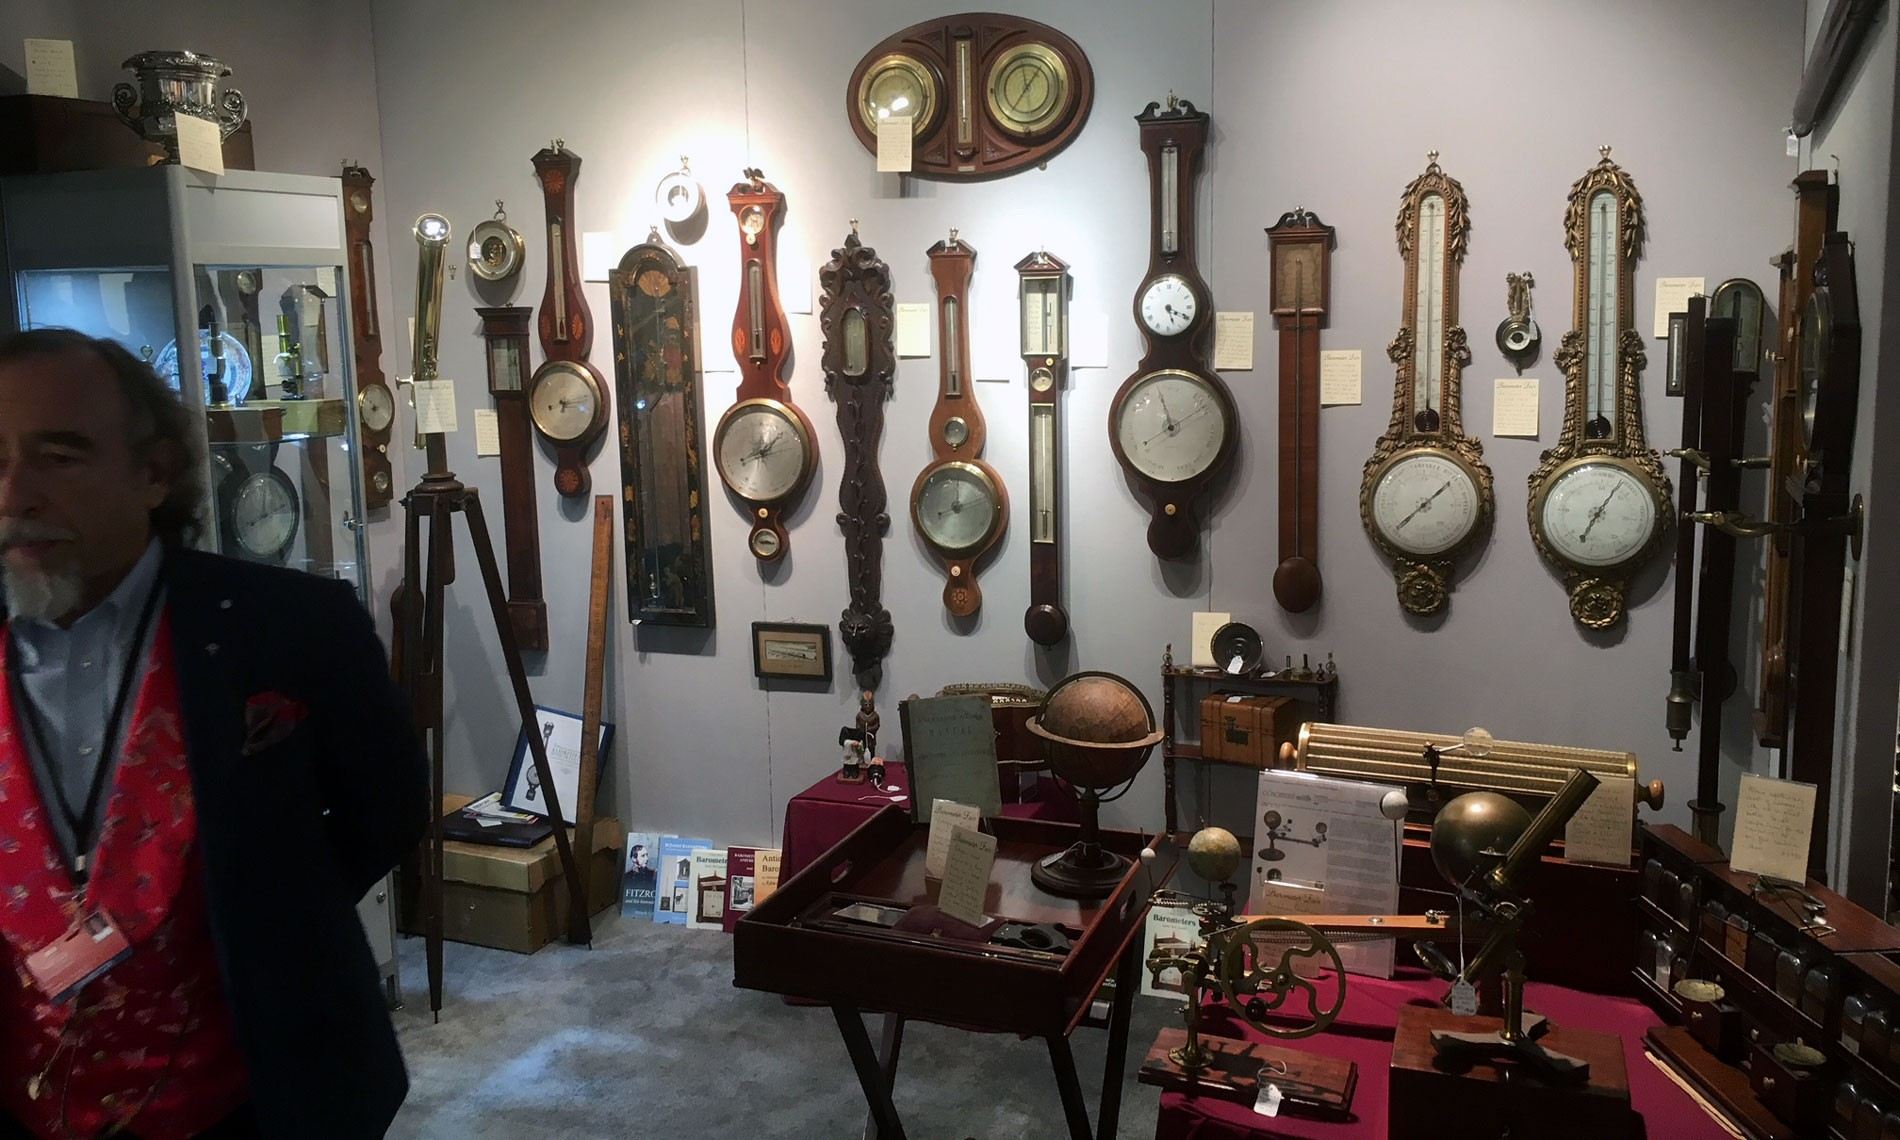 Barometer Fair: Barometer Shop in Sarasota, FL